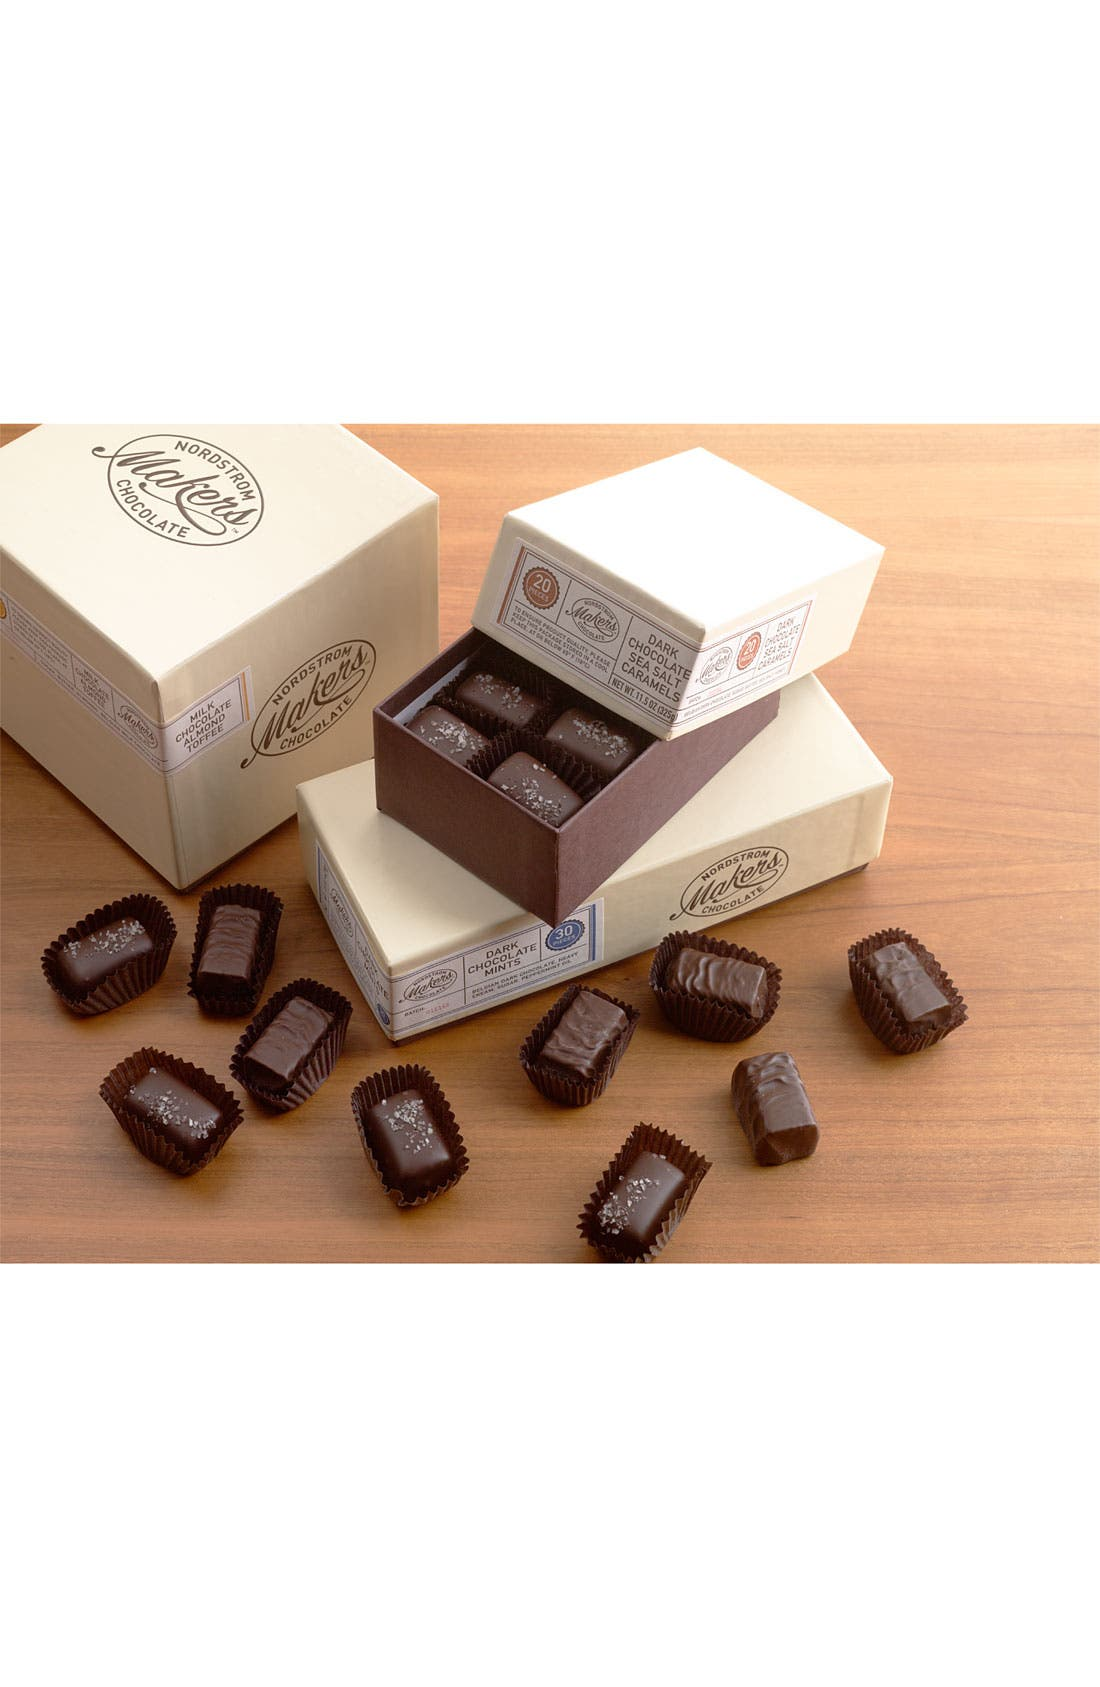 NORDSTROM MAKERS CHOCOLATE,                             Dark Chocolate Sea Salt Caramels,                             Alternate thumbnail 2, color,                             200